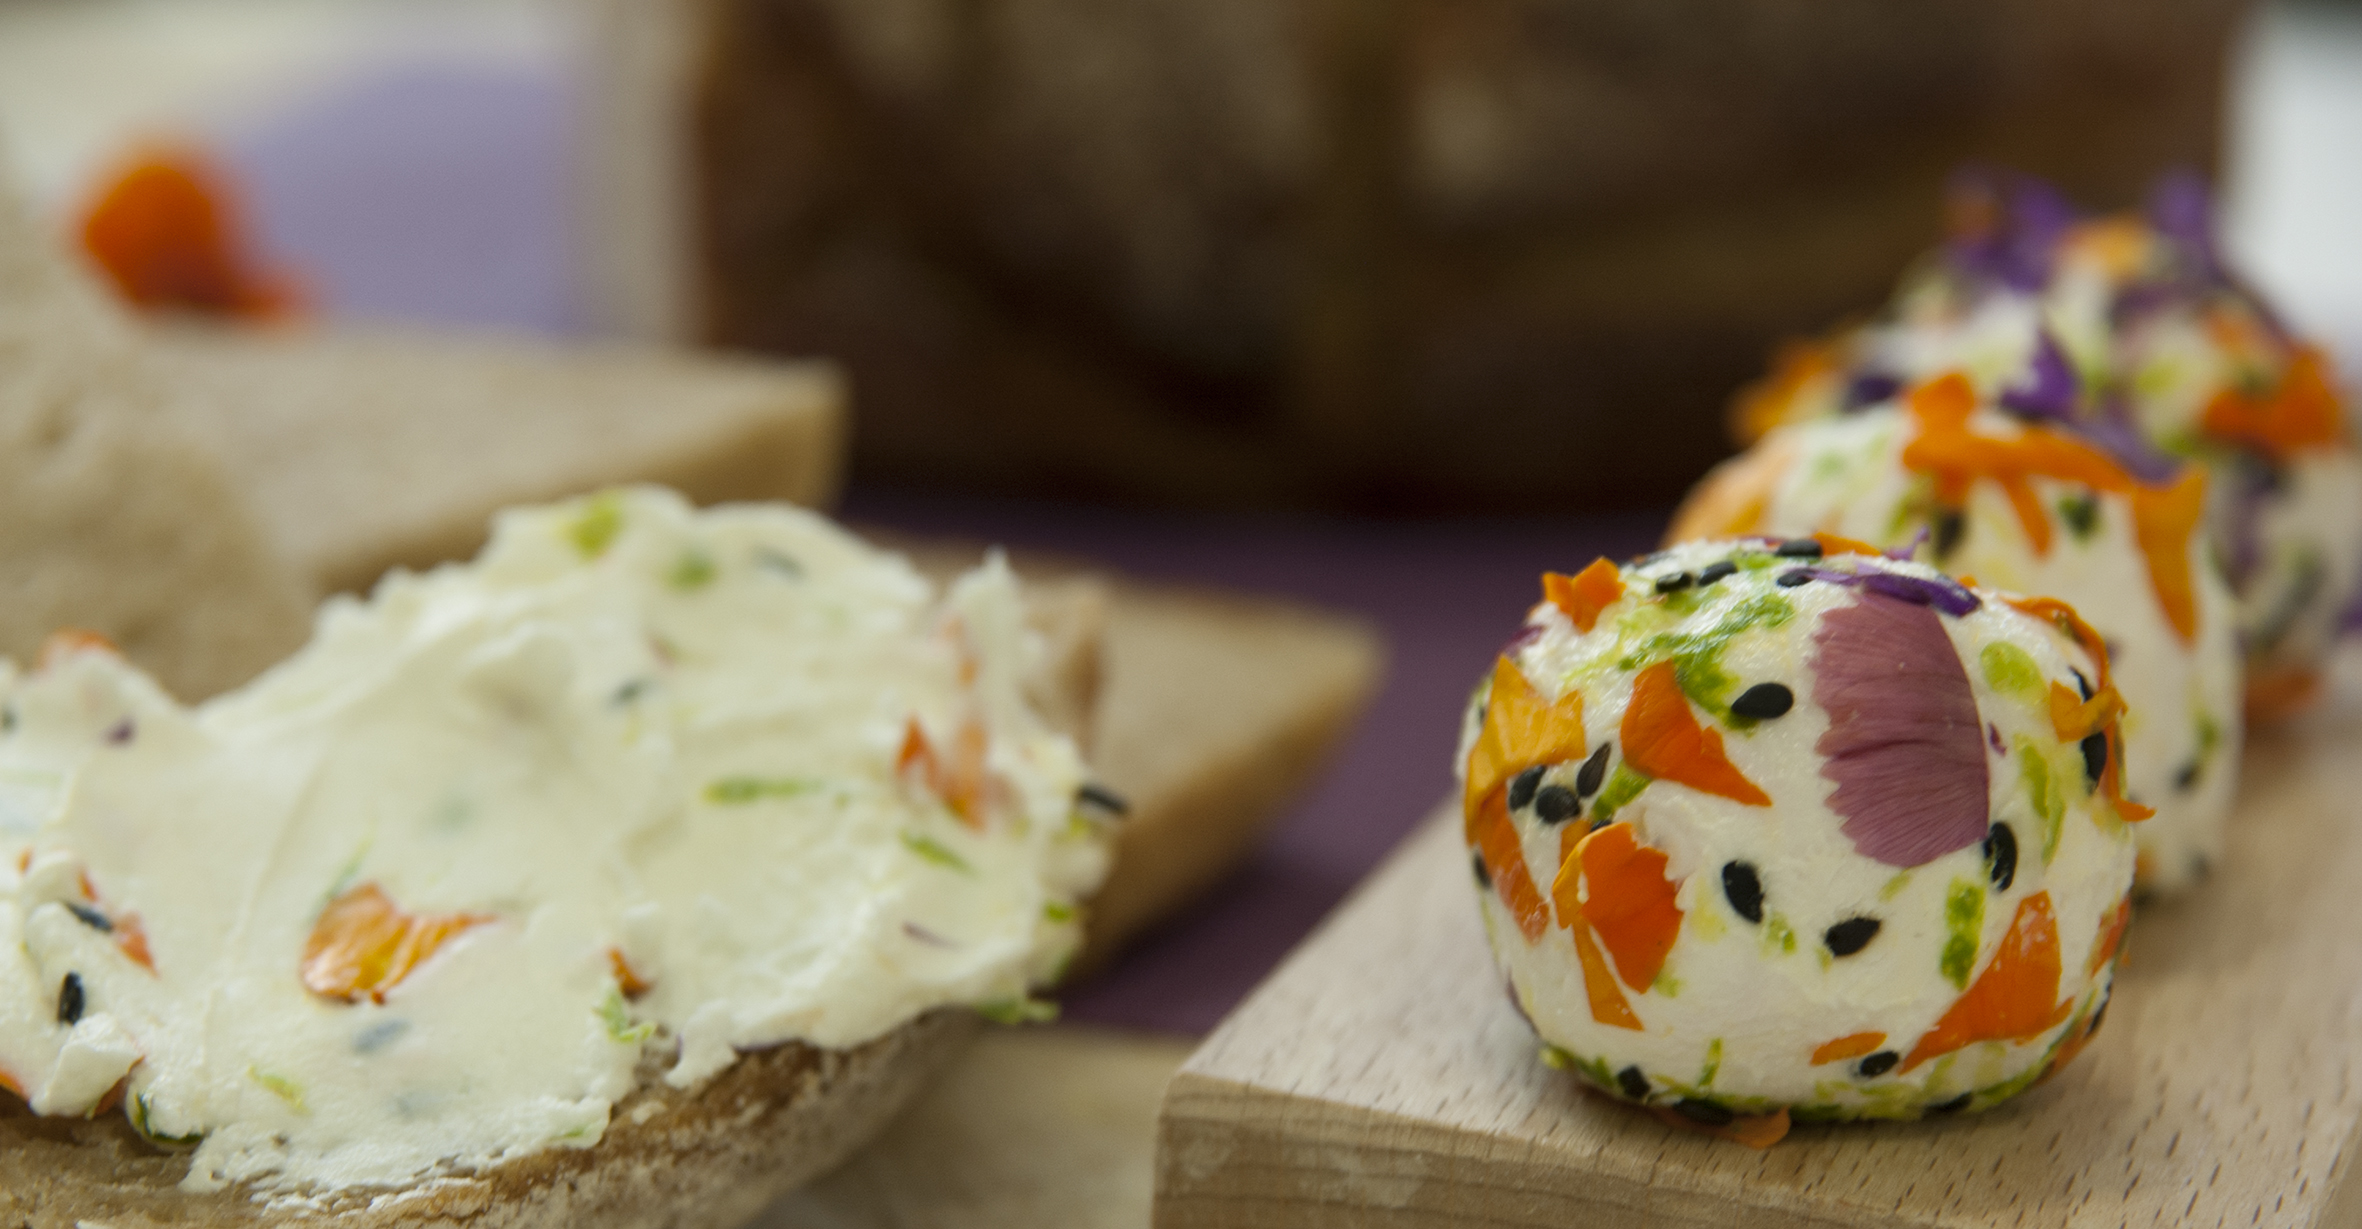 Goat's Cheese 2